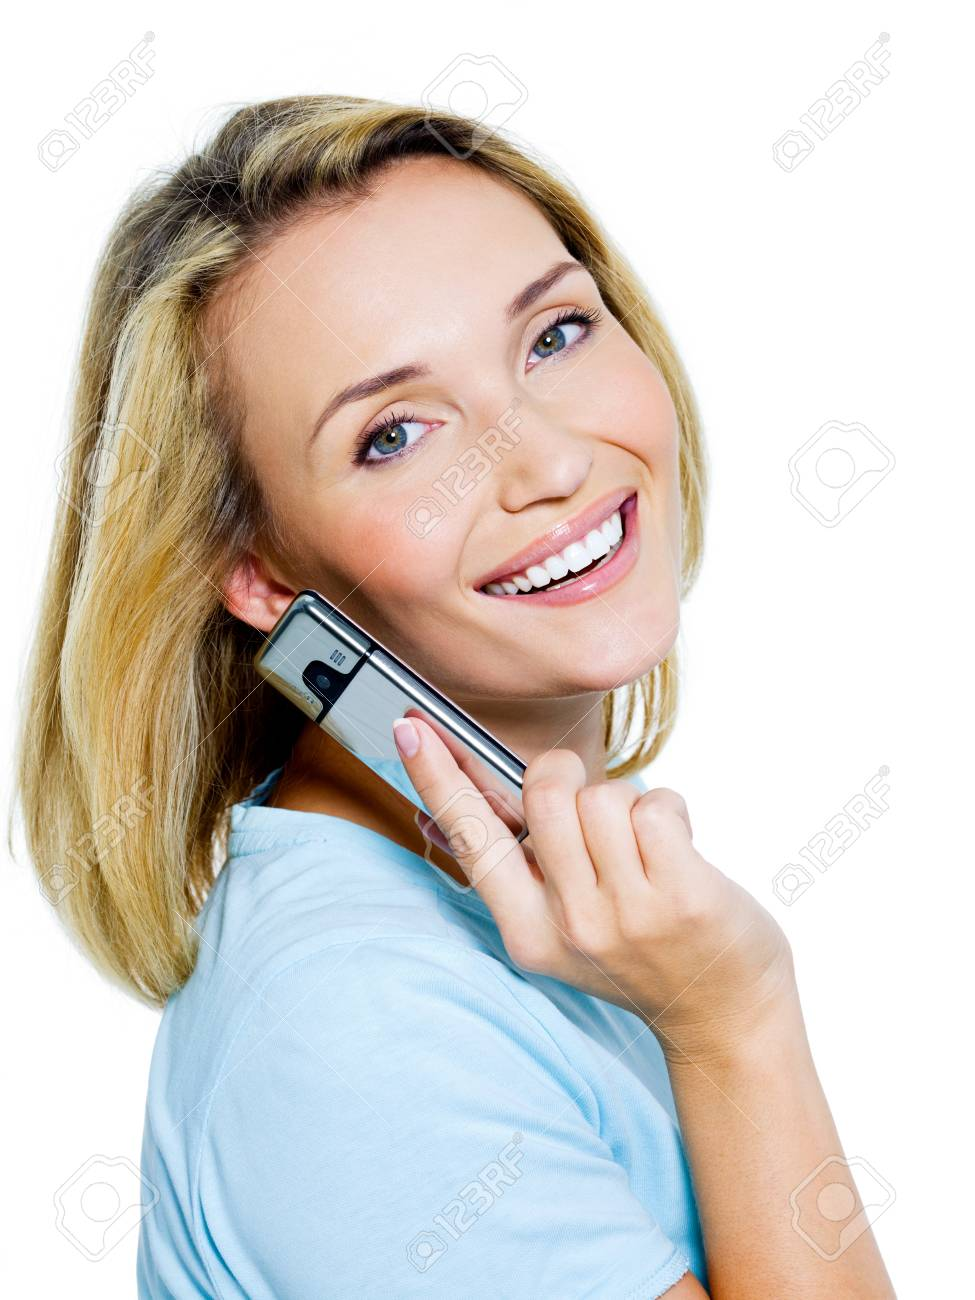 successful woman call in the phone on white background Stock Photo - 7953528